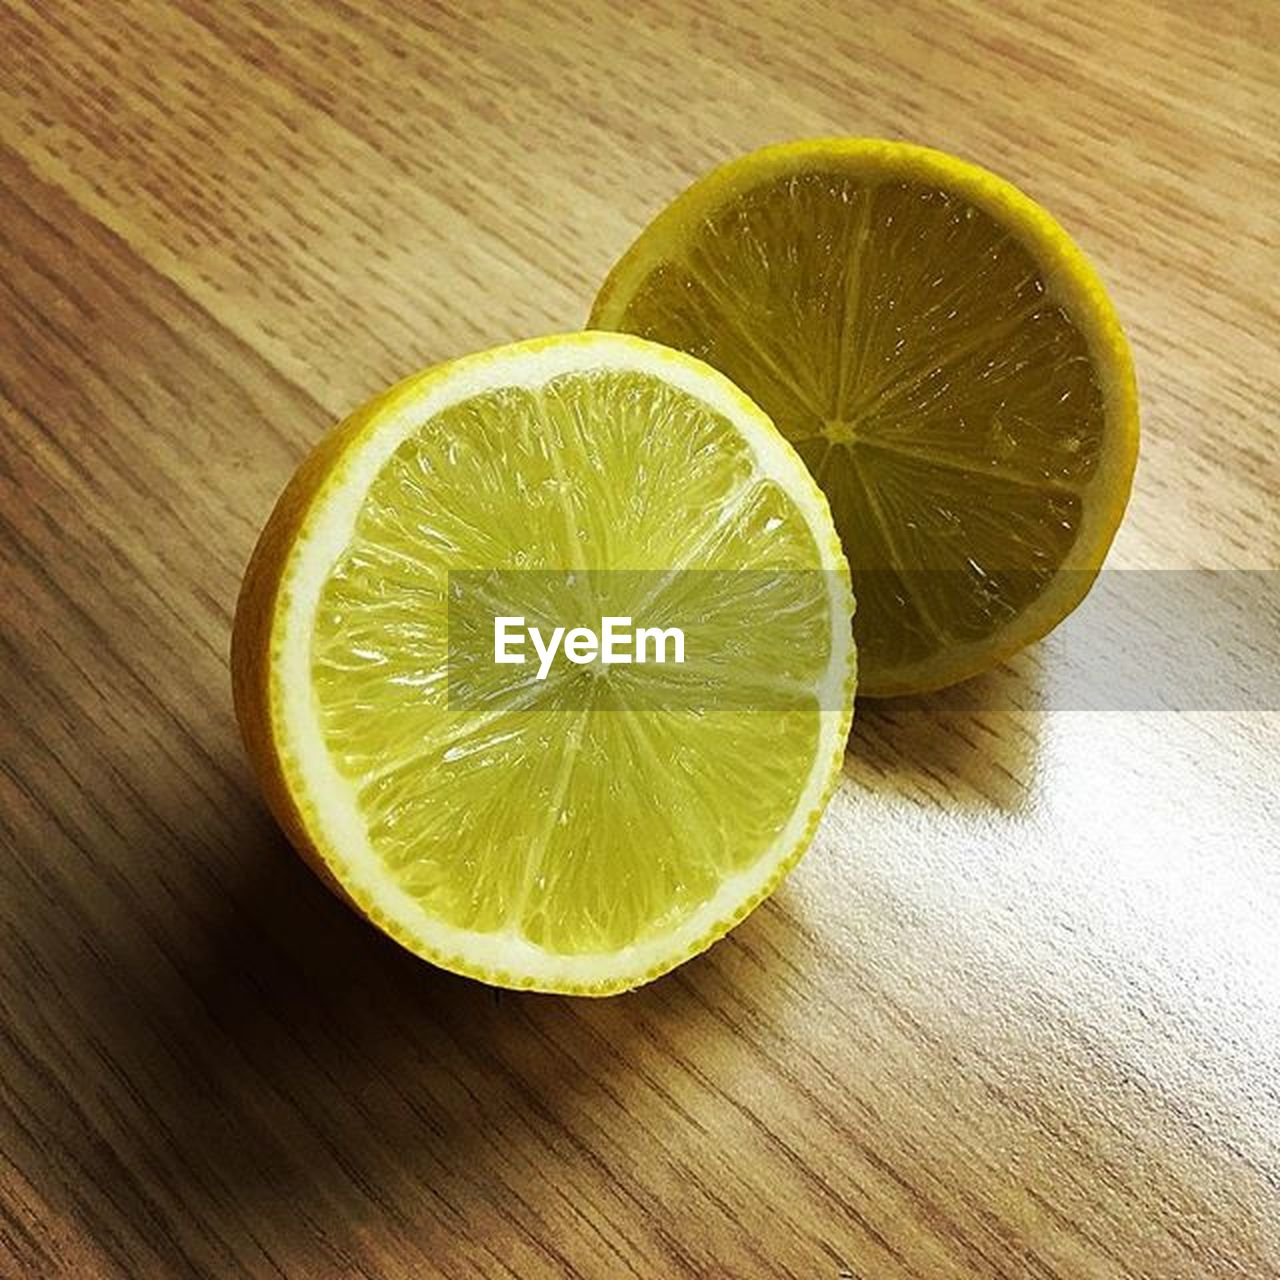 fruit, food and drink, citrus fruit, food, slice, healthy eating, freshness, lemon, wellbeing, cross section, close-up, no people, indoors, wood - material, lime, table, yellow, halved, green color, directly above, antioxidant, small group of objects, wood grain, sour taste